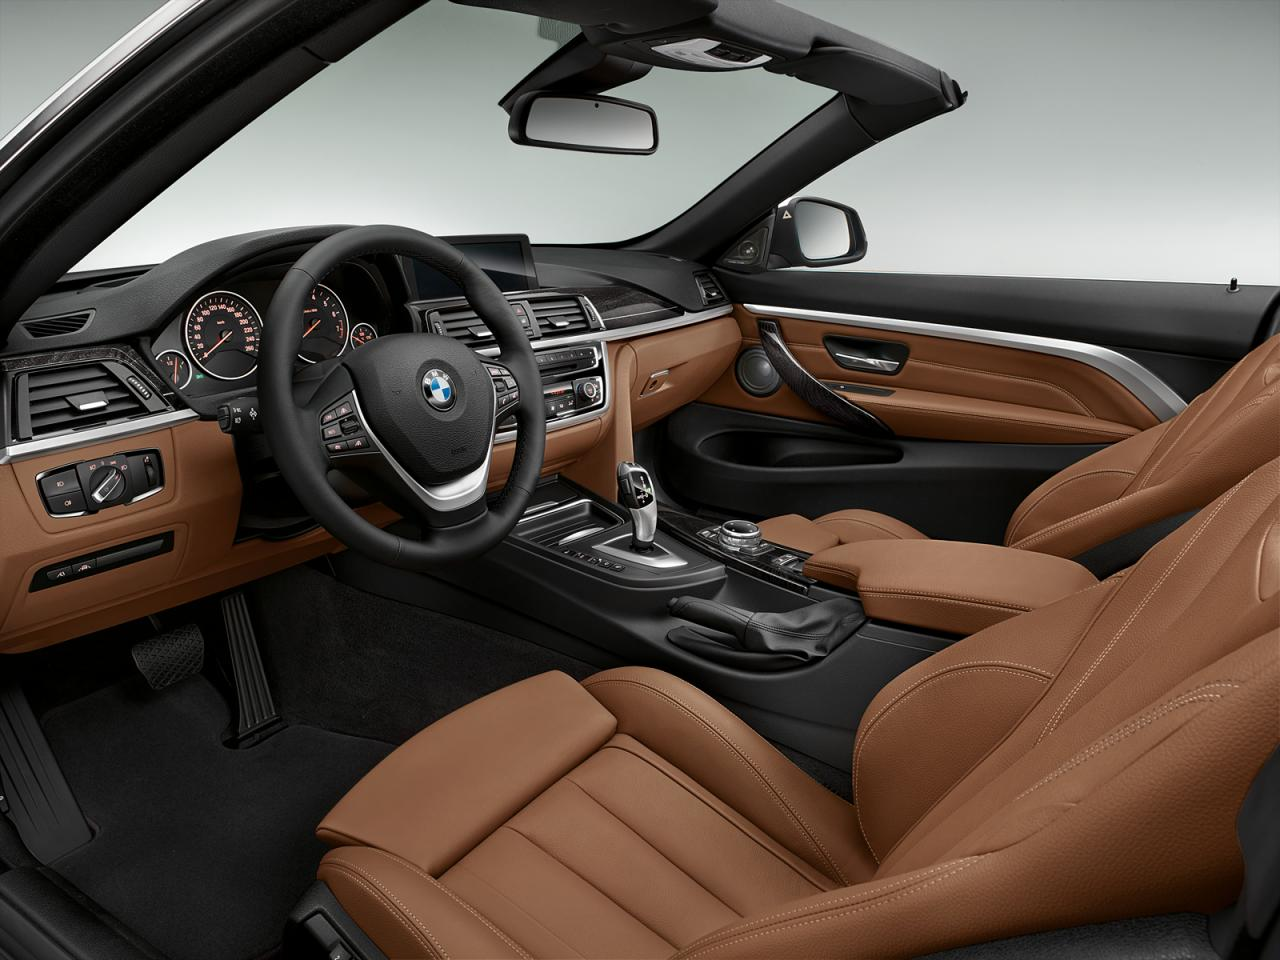 BMW Series Convertible Interior - Bmw 4 series interior